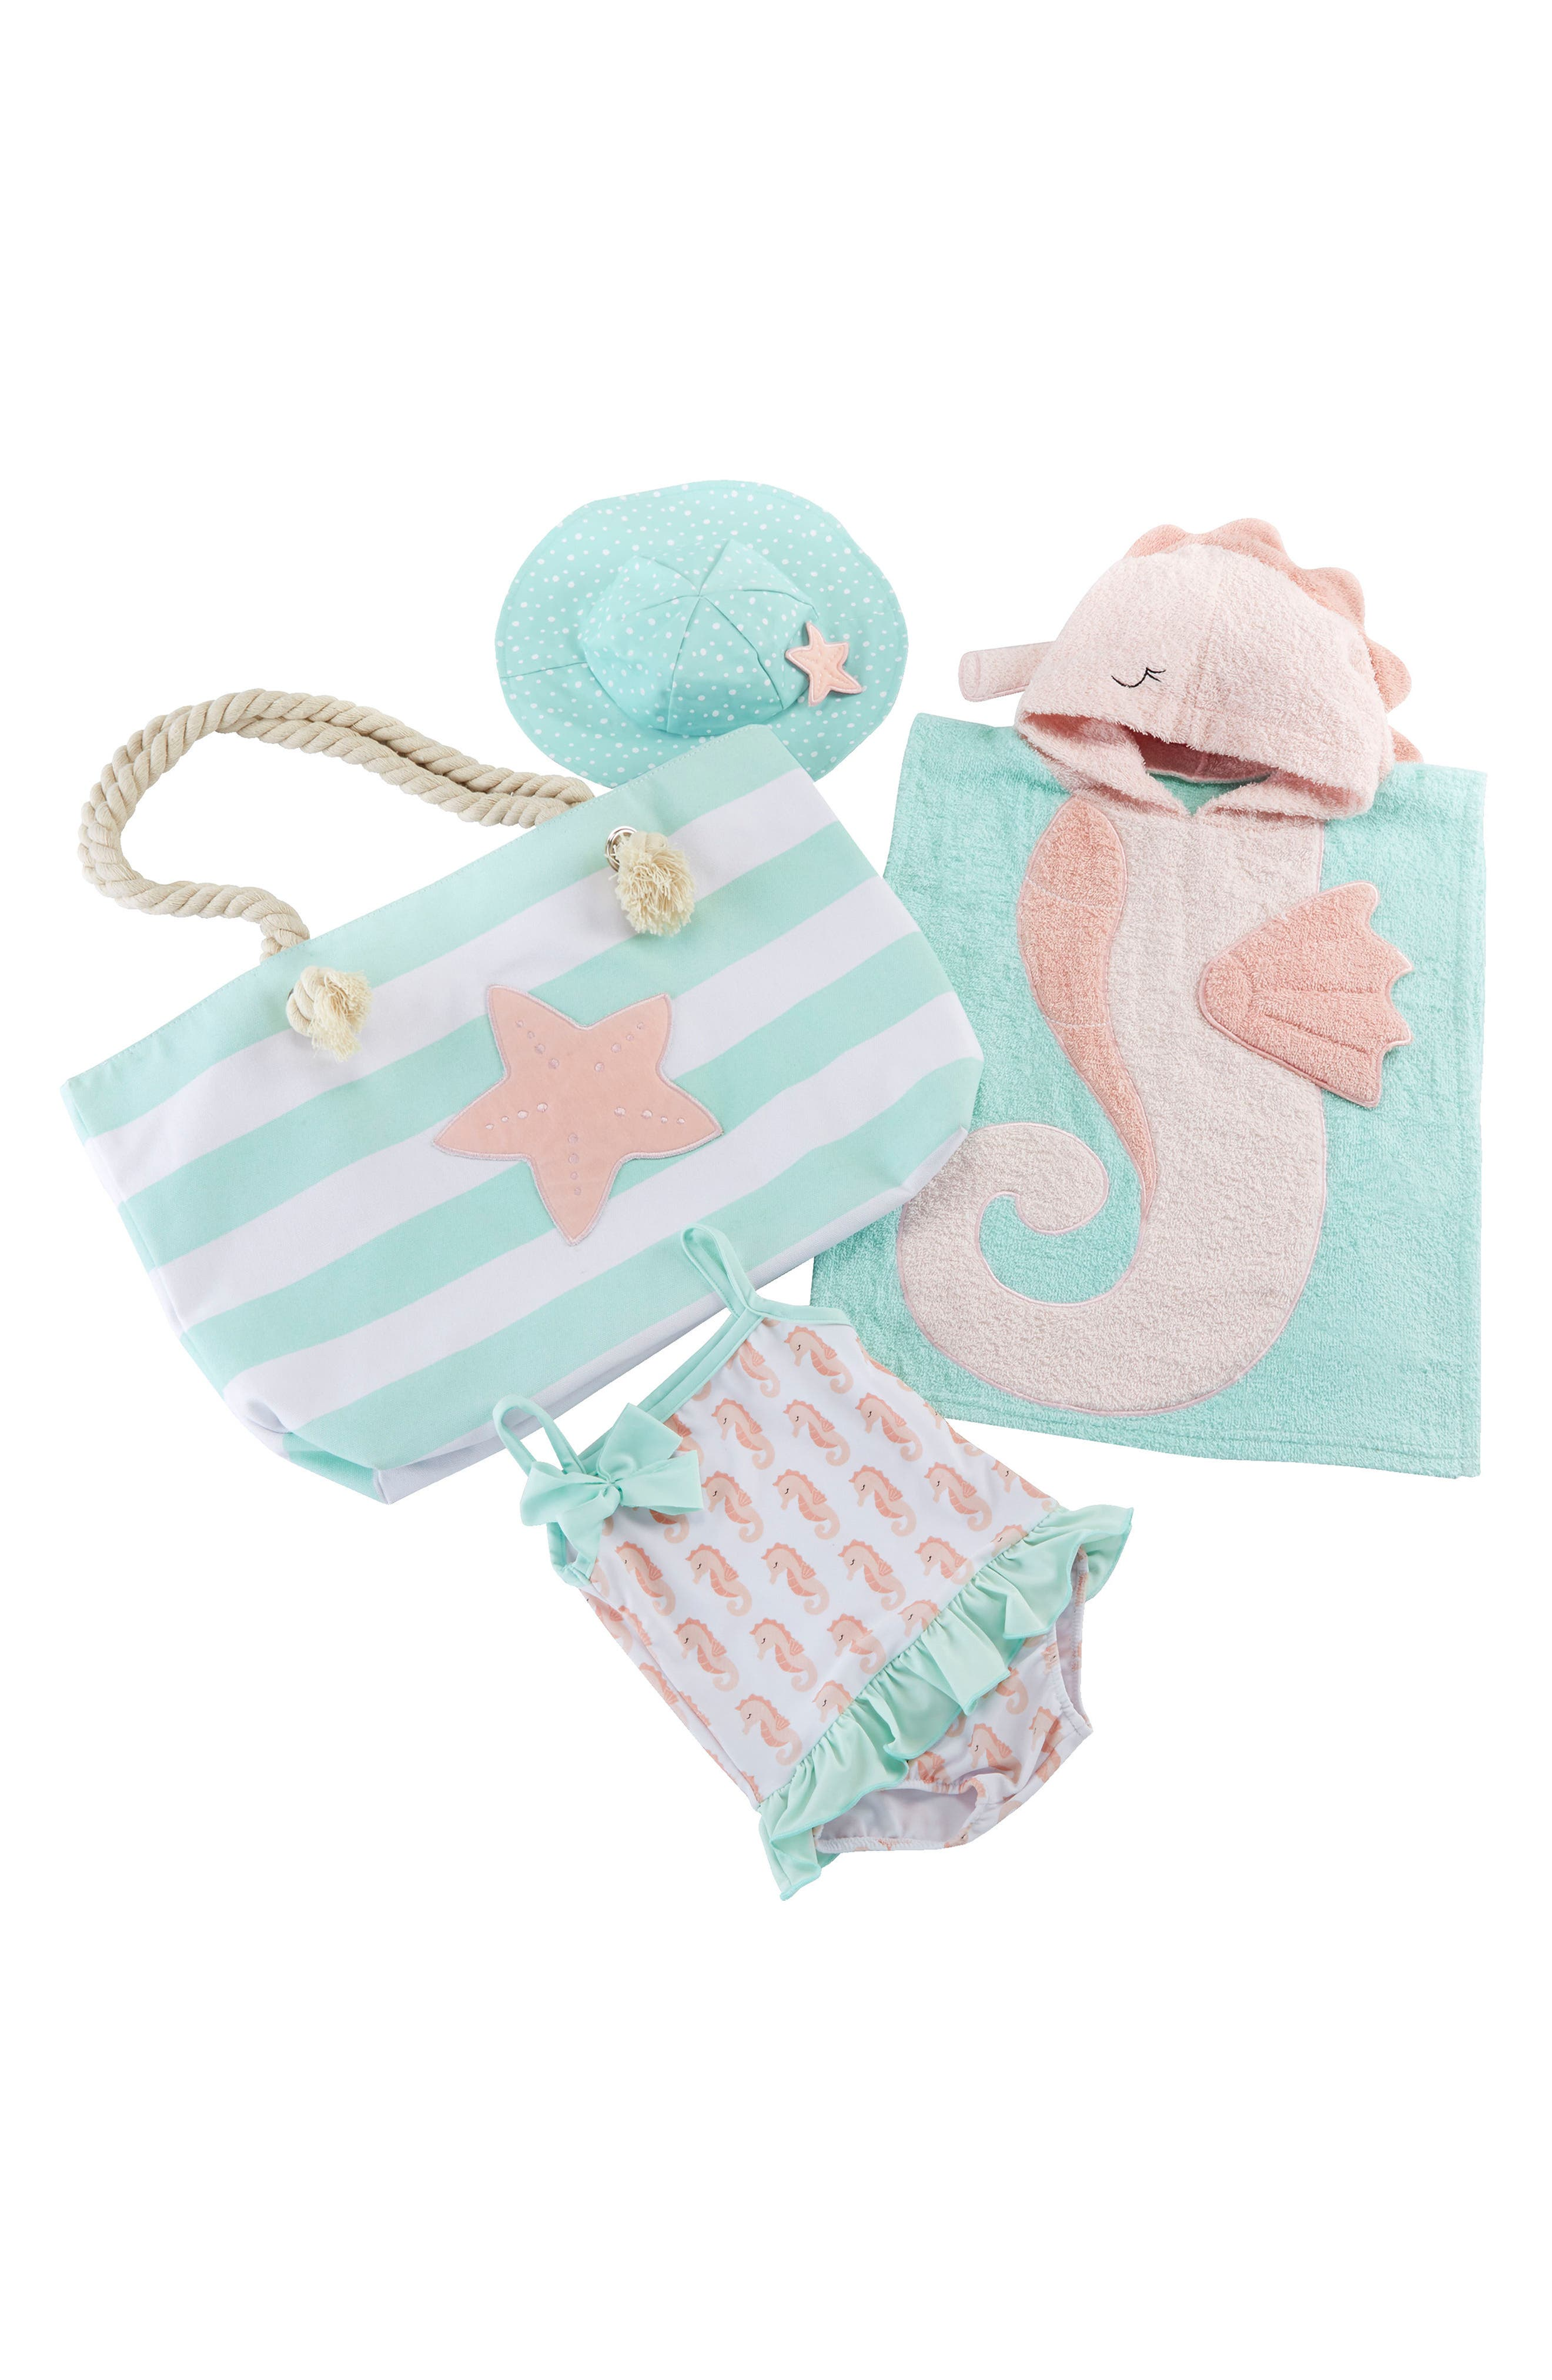 Seahorse Hooded Towel, Swimsuit, Sun Hat & Tote Set, Main, color, PINK